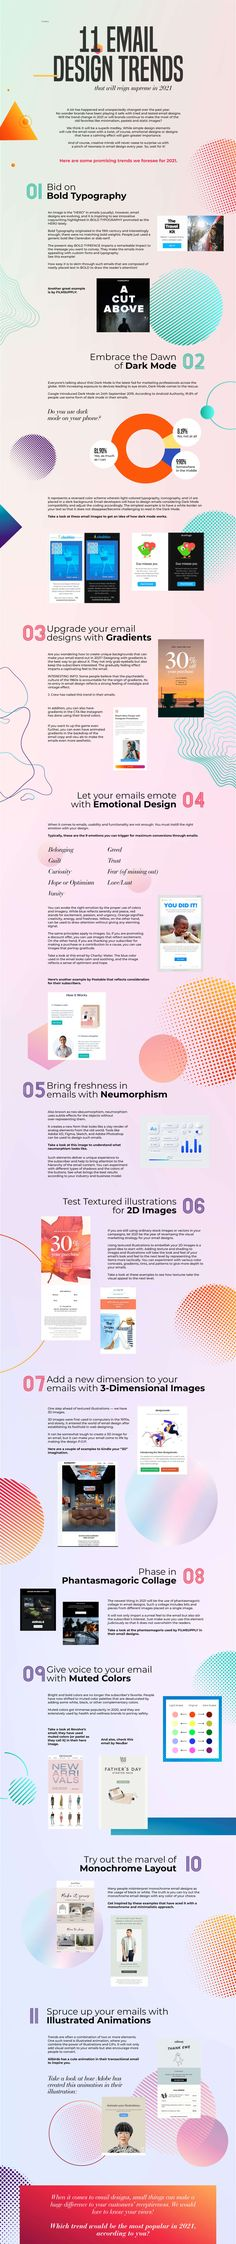 11 Creative Email Design Trends to Watch in 2021 [Infographic] Email Marketing Strategy, Sales And Marketing, Marketing Digital, Media Marketing, Inbound Marketing, Content Marketing, Digital Customer Journey, Social Media Services, Graphic Design Trends